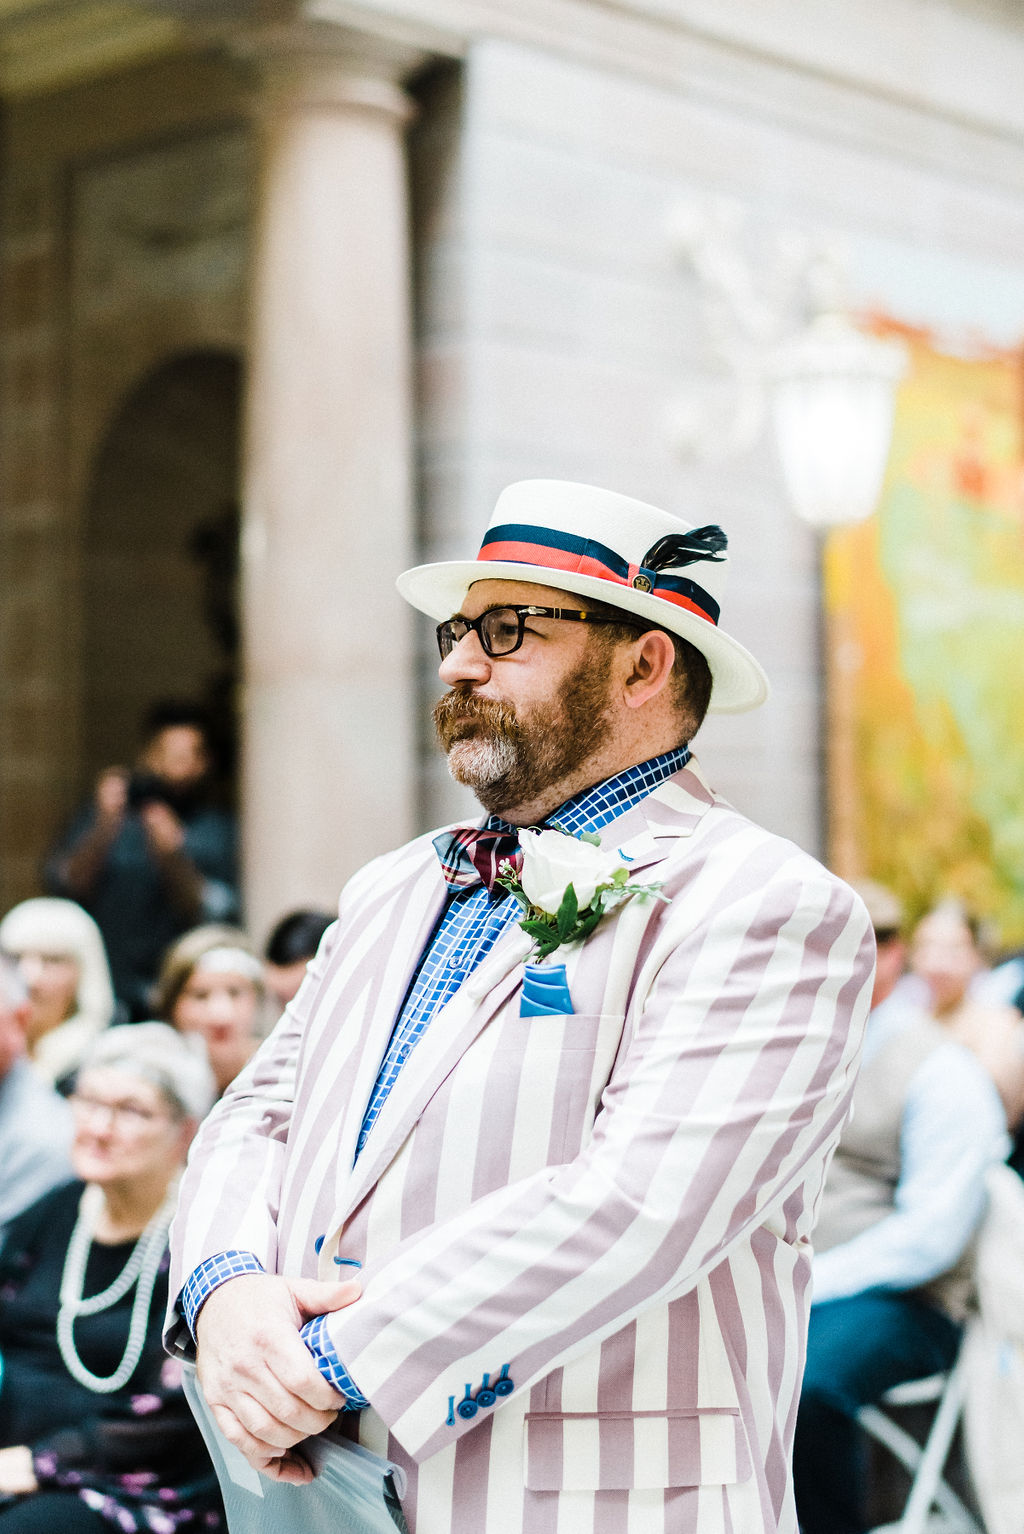 Officiant dressed up for their Great Gatsby themed wedding - Pearl Weddings & Events